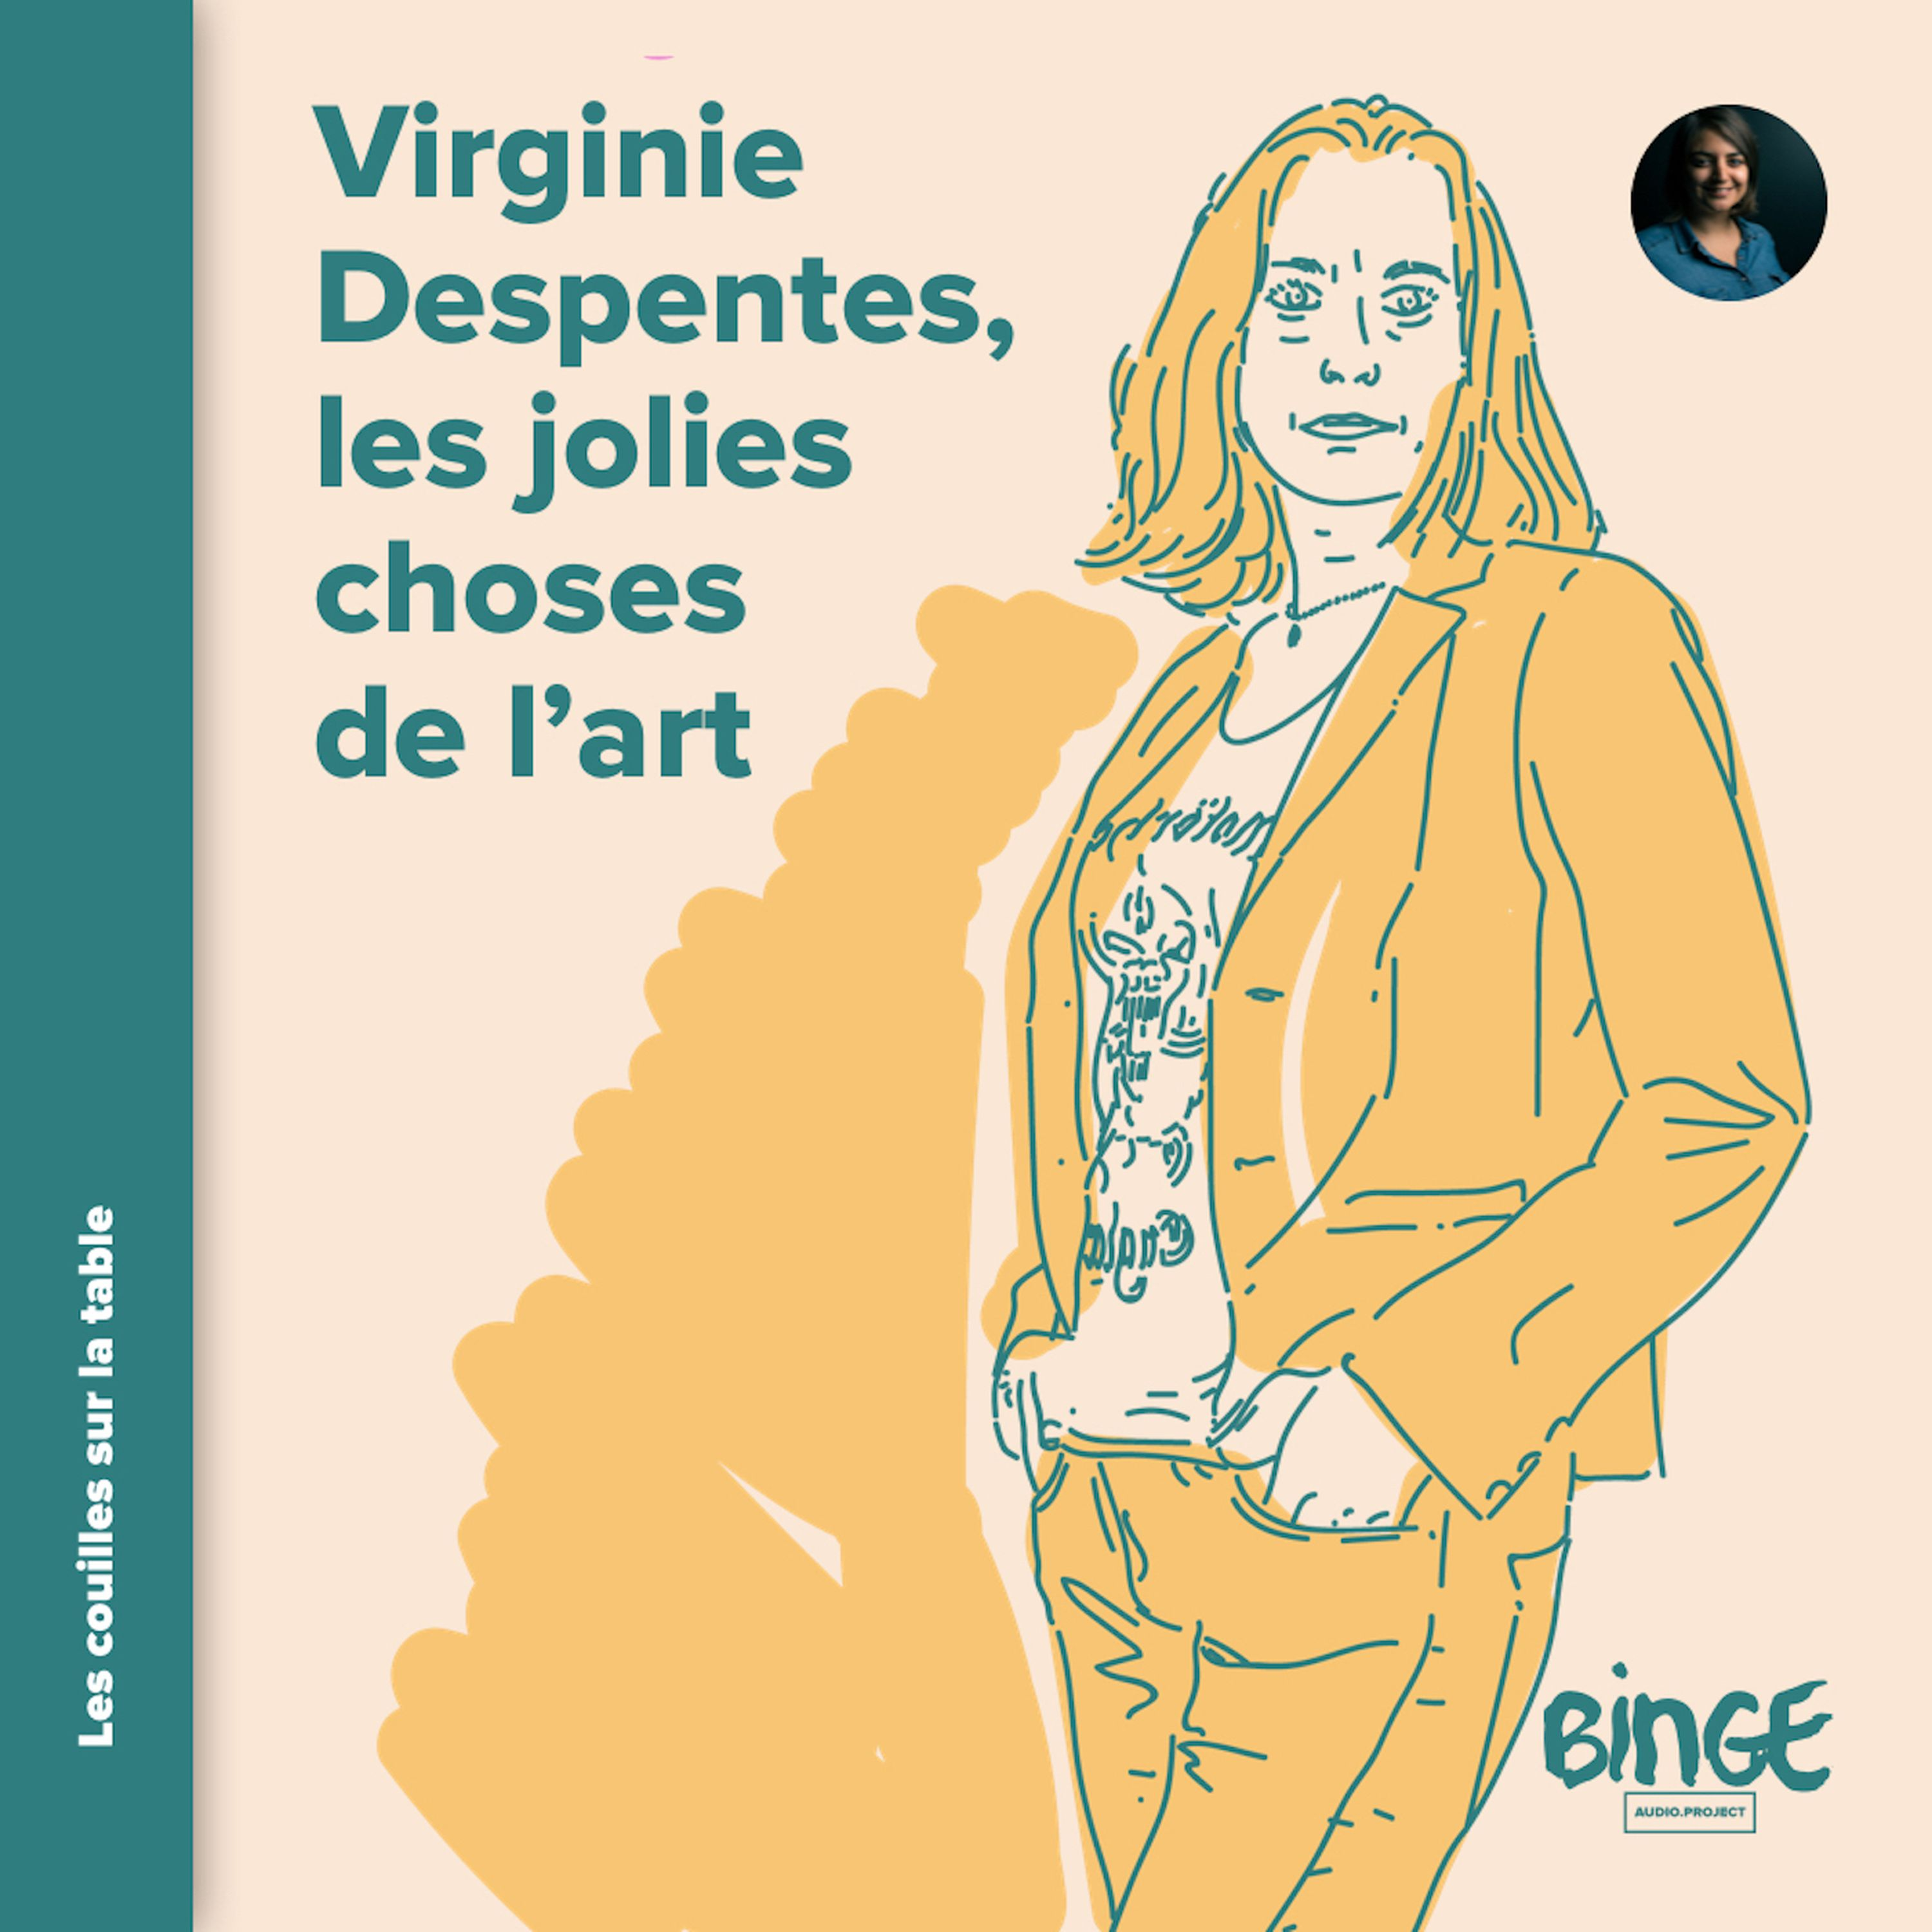 Virginie Despentes - Les jolies choses de l'art